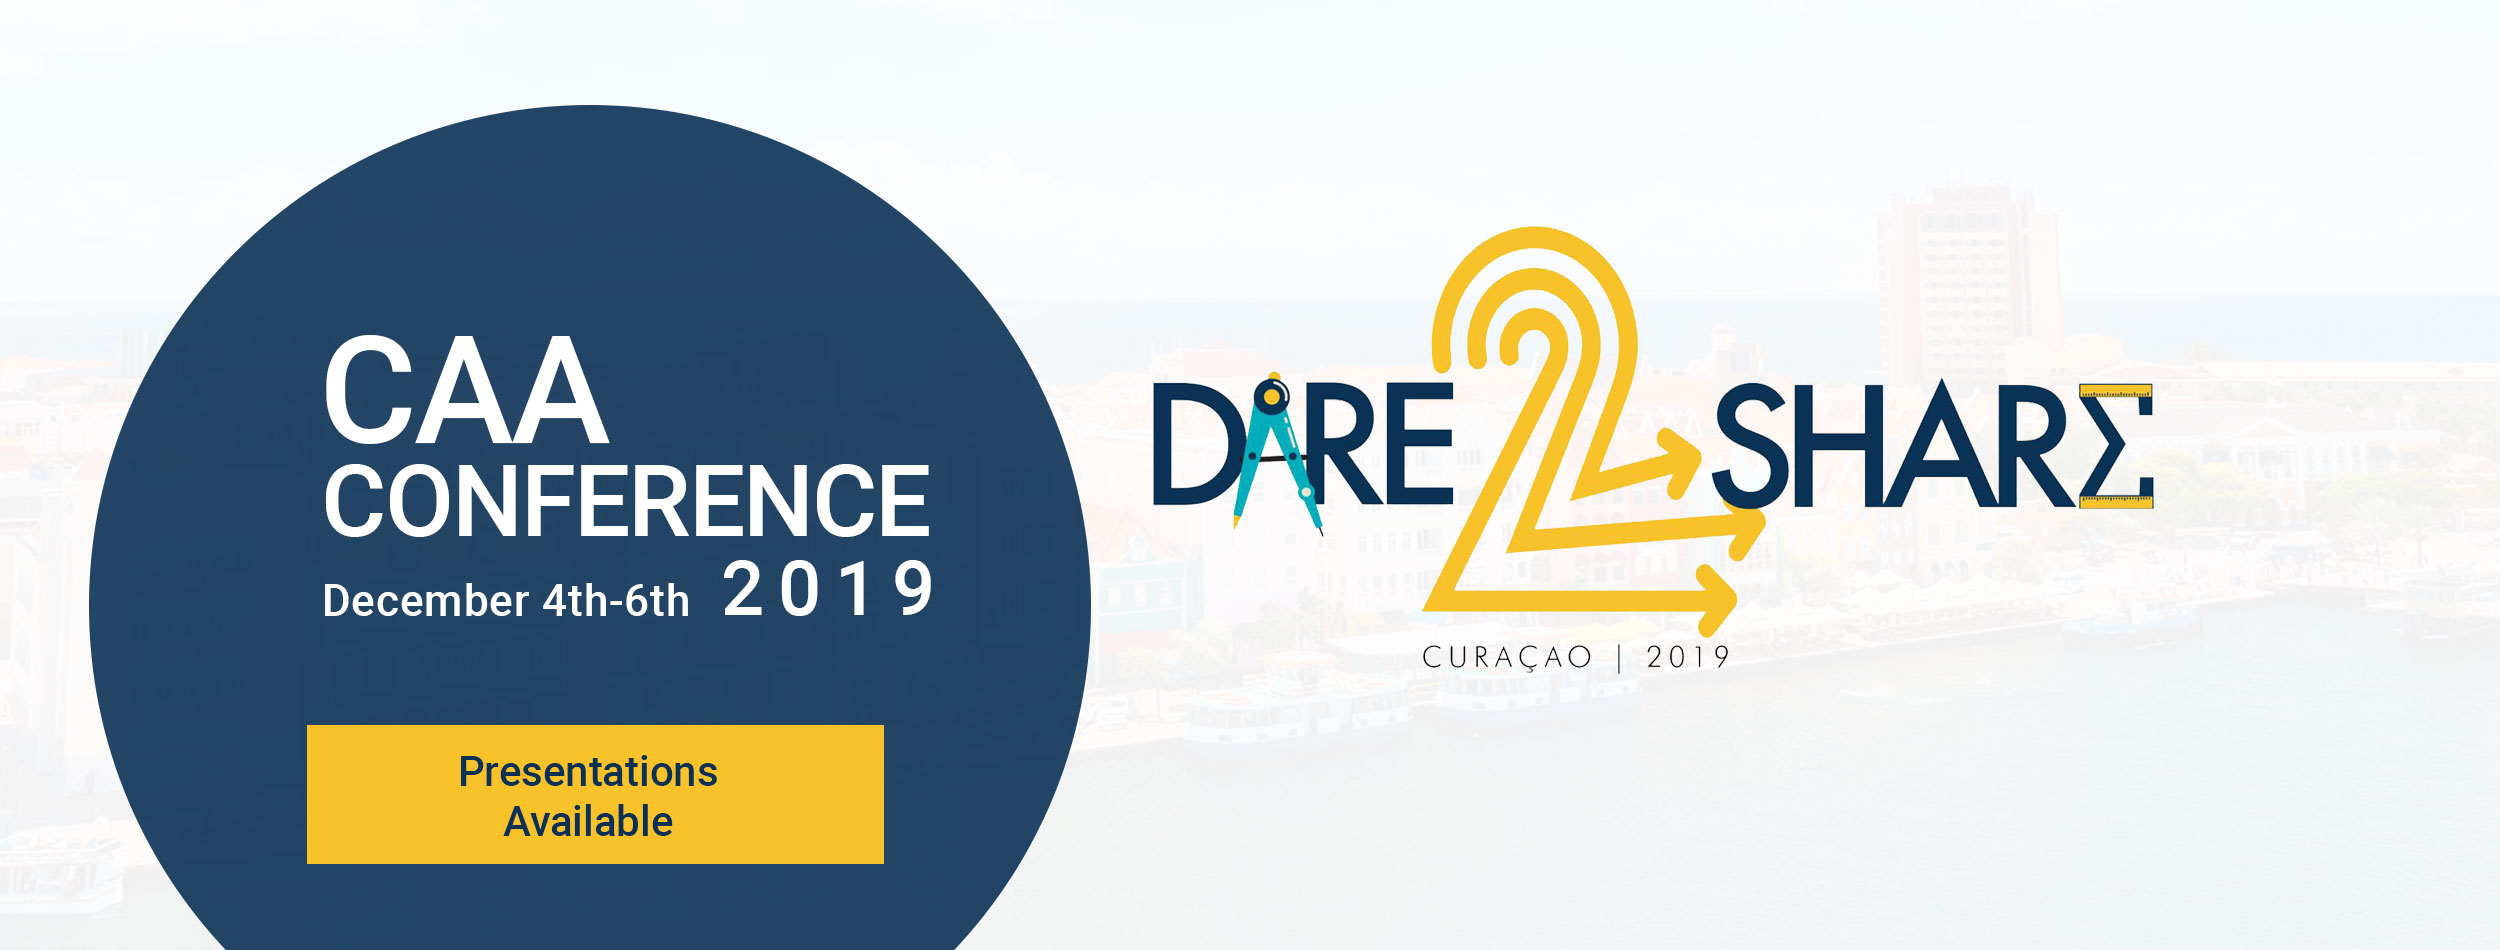 CAA 2019 Conference